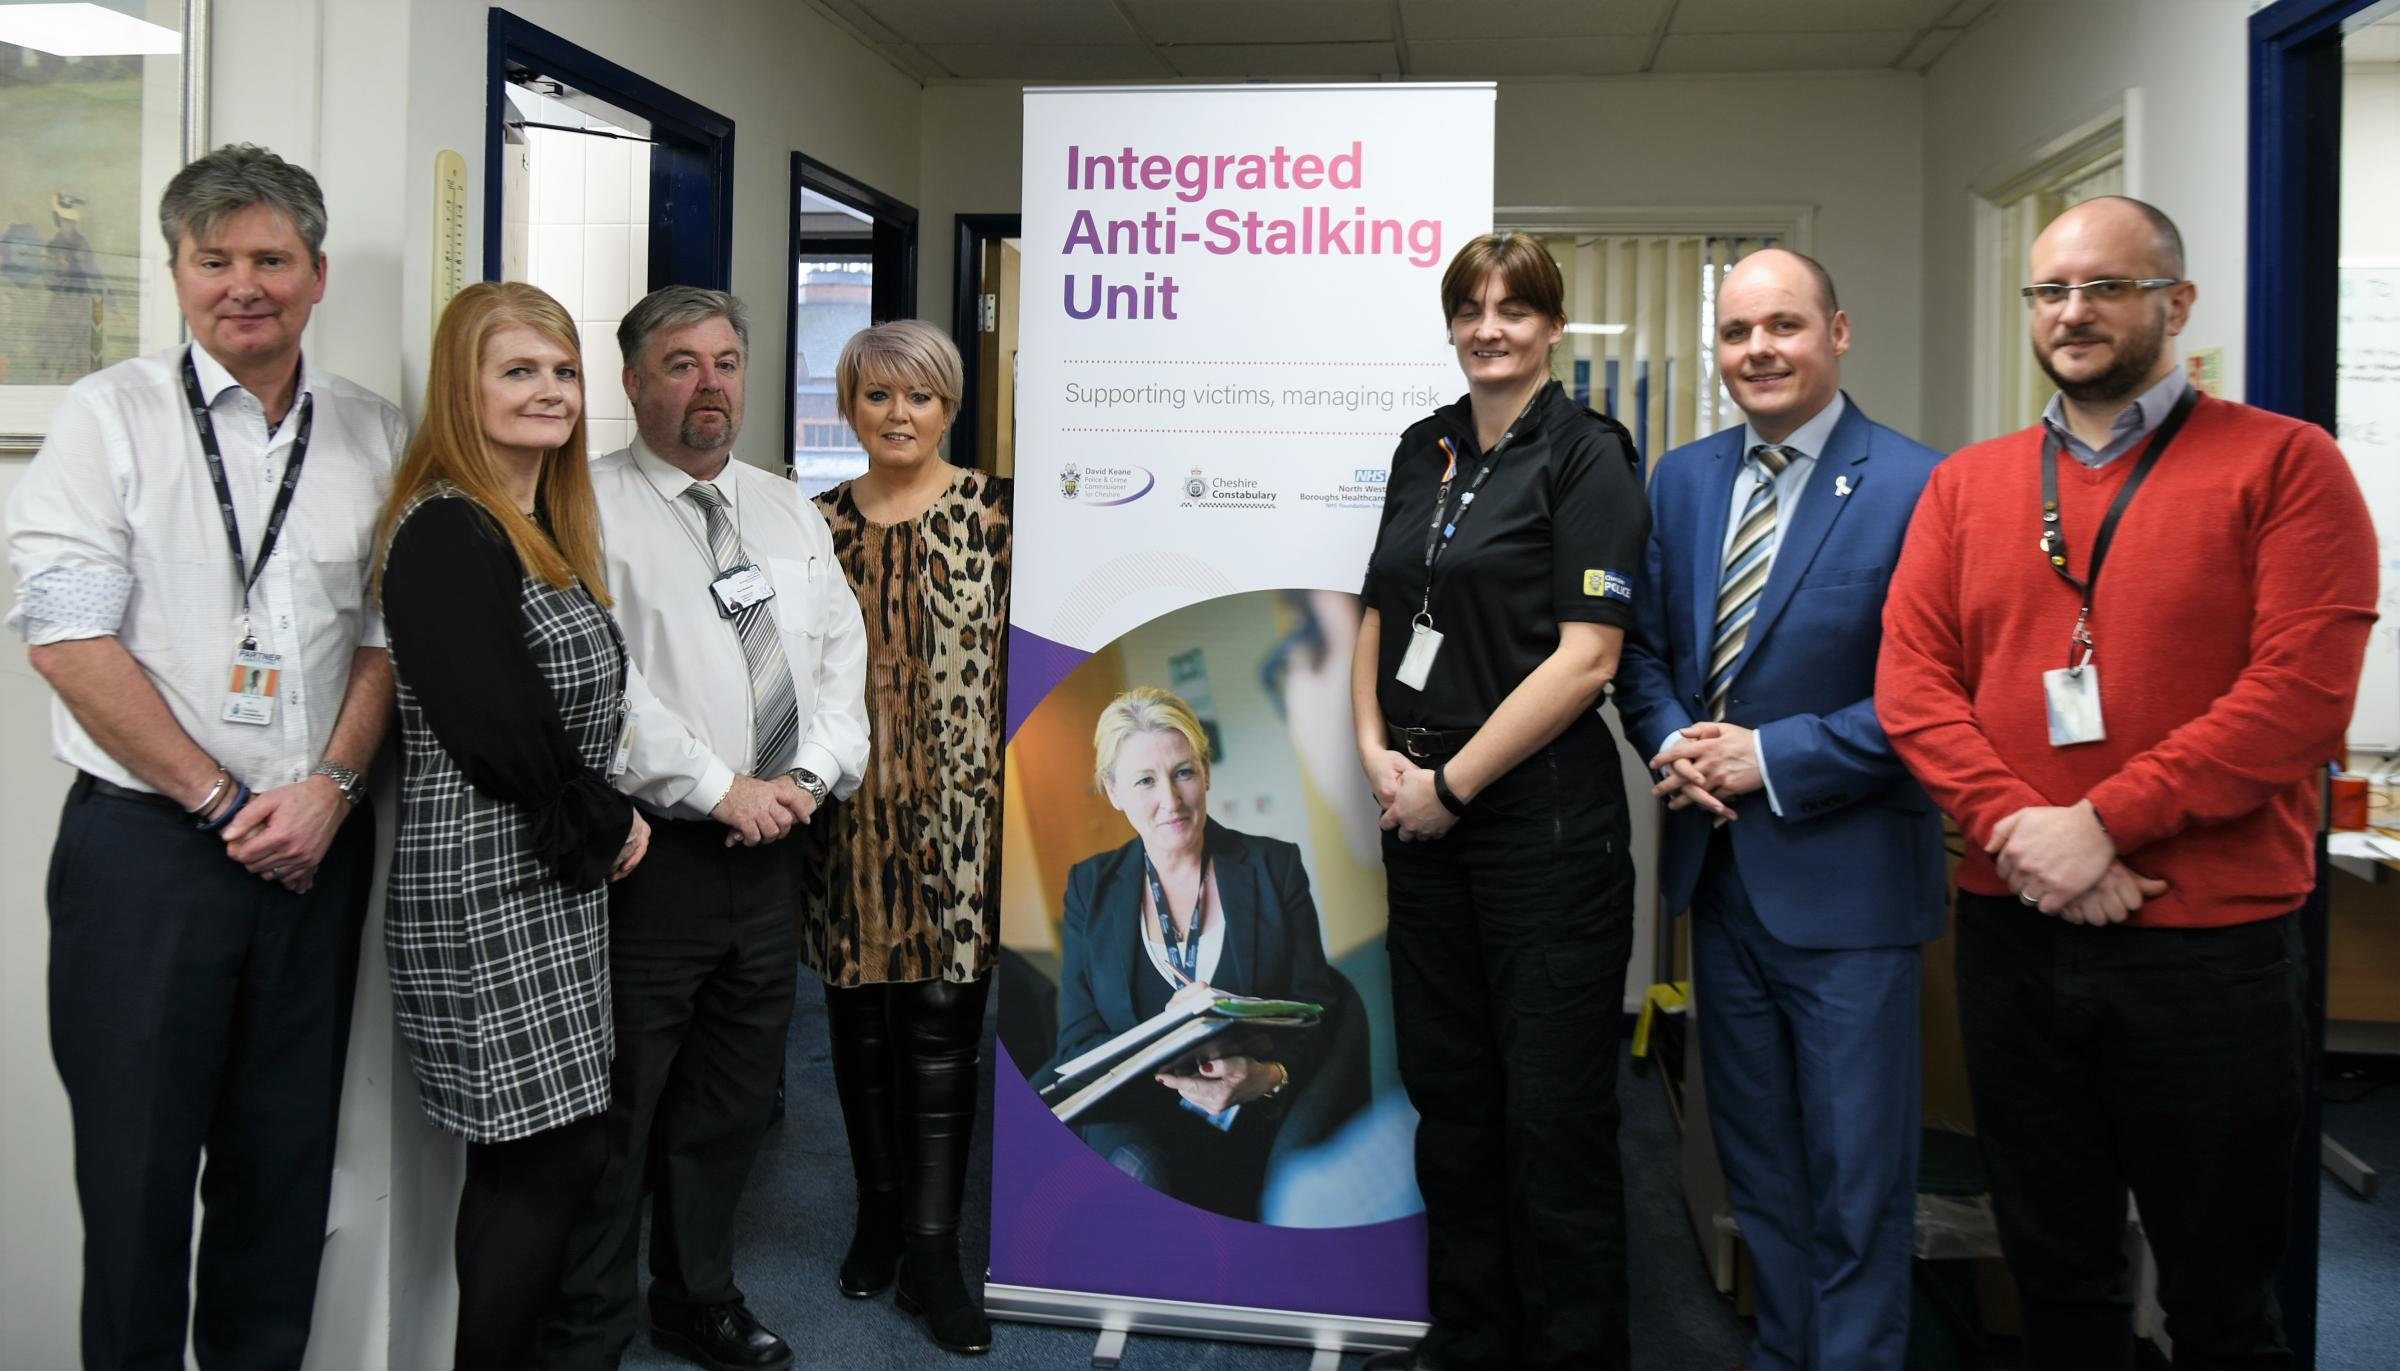 PCC David Keane at a recent visit to the unit with the Victims Commissioner, Baroness Helen Newlove, and officers and staff at the unit